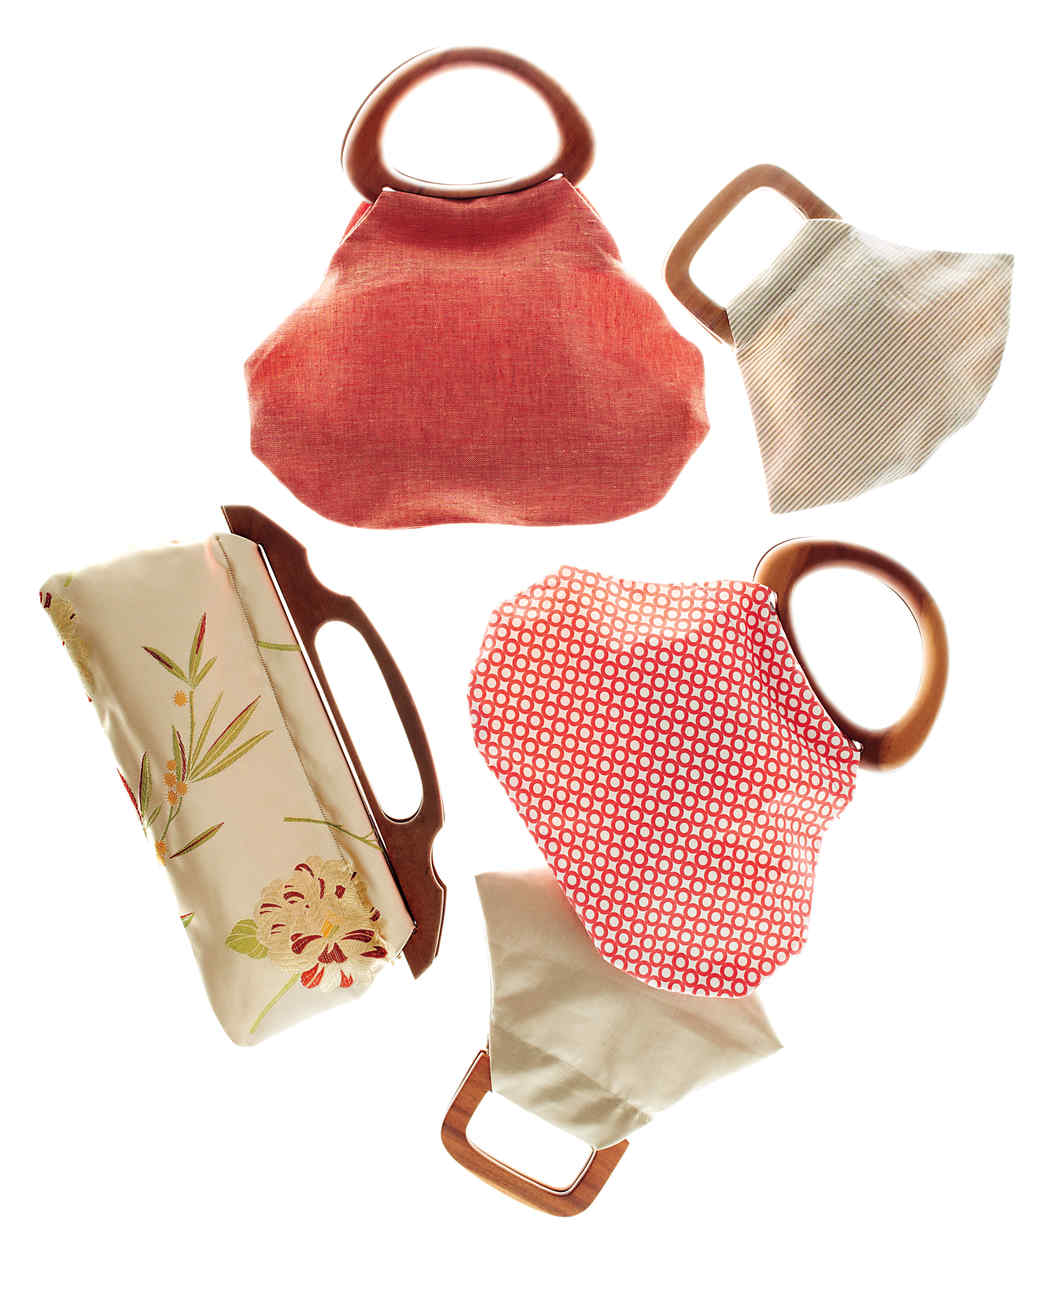 Tote Bag And Purse Sewing Projects Martha Stewart